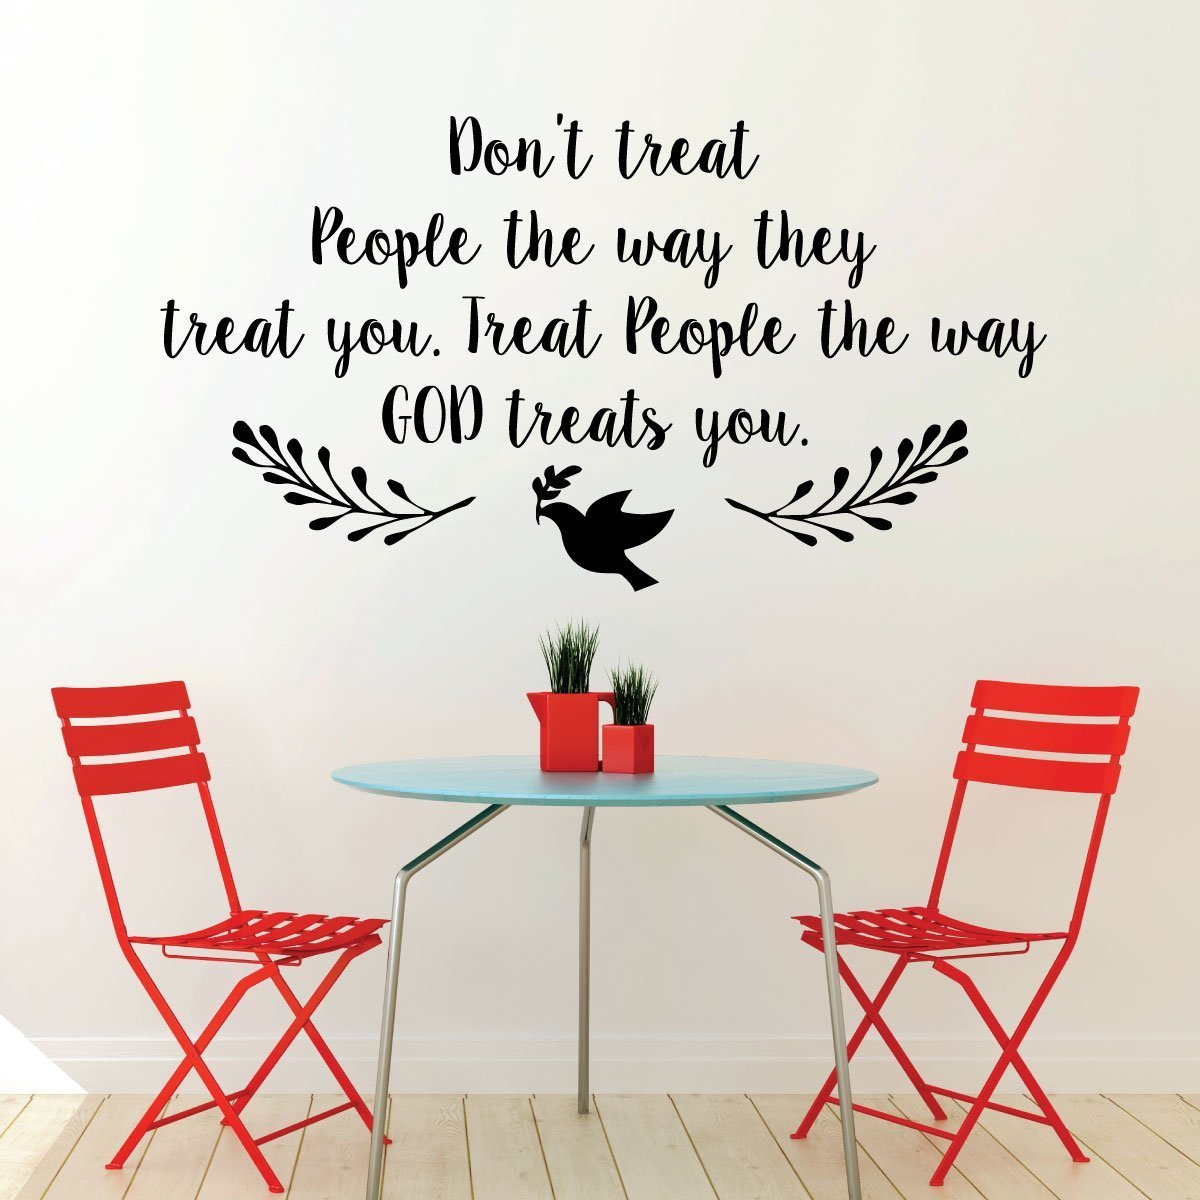 Christian Wall Decal - Don't Treat People The way They Treat You. Treat People The Way GOD Treats You -Religious Wall Decorations